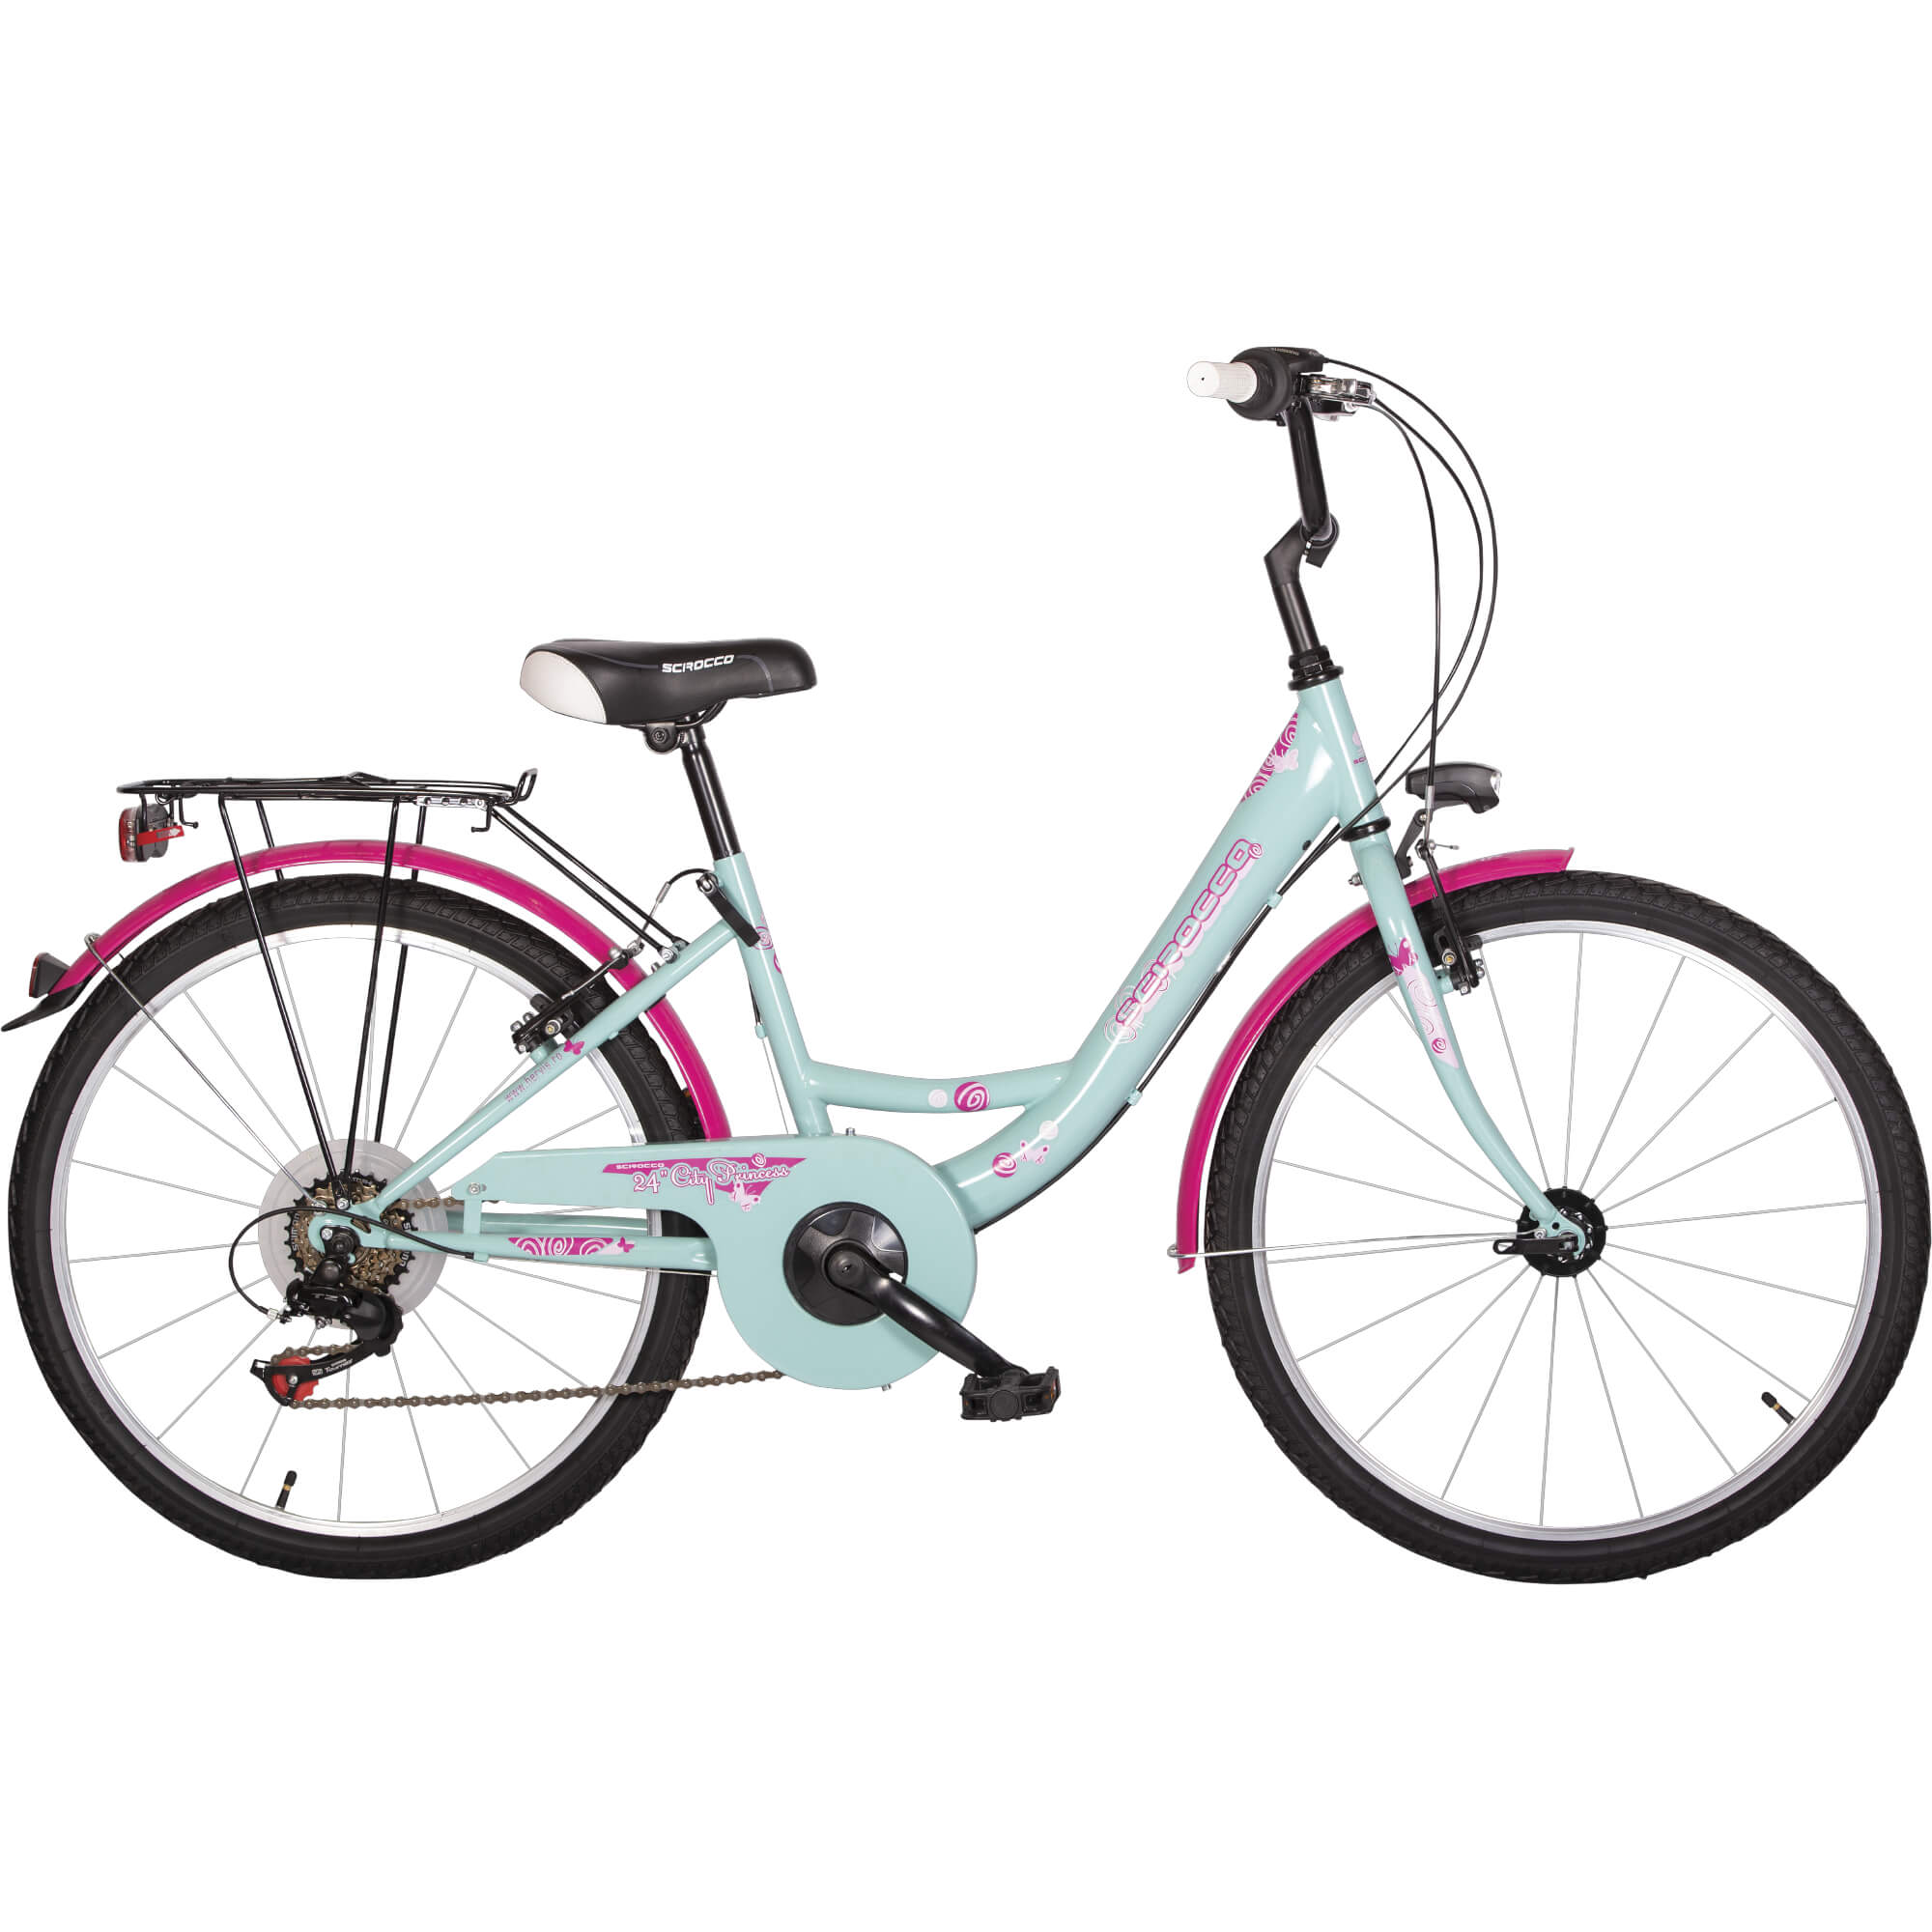 Bicicleta copii City Princess Scirocco